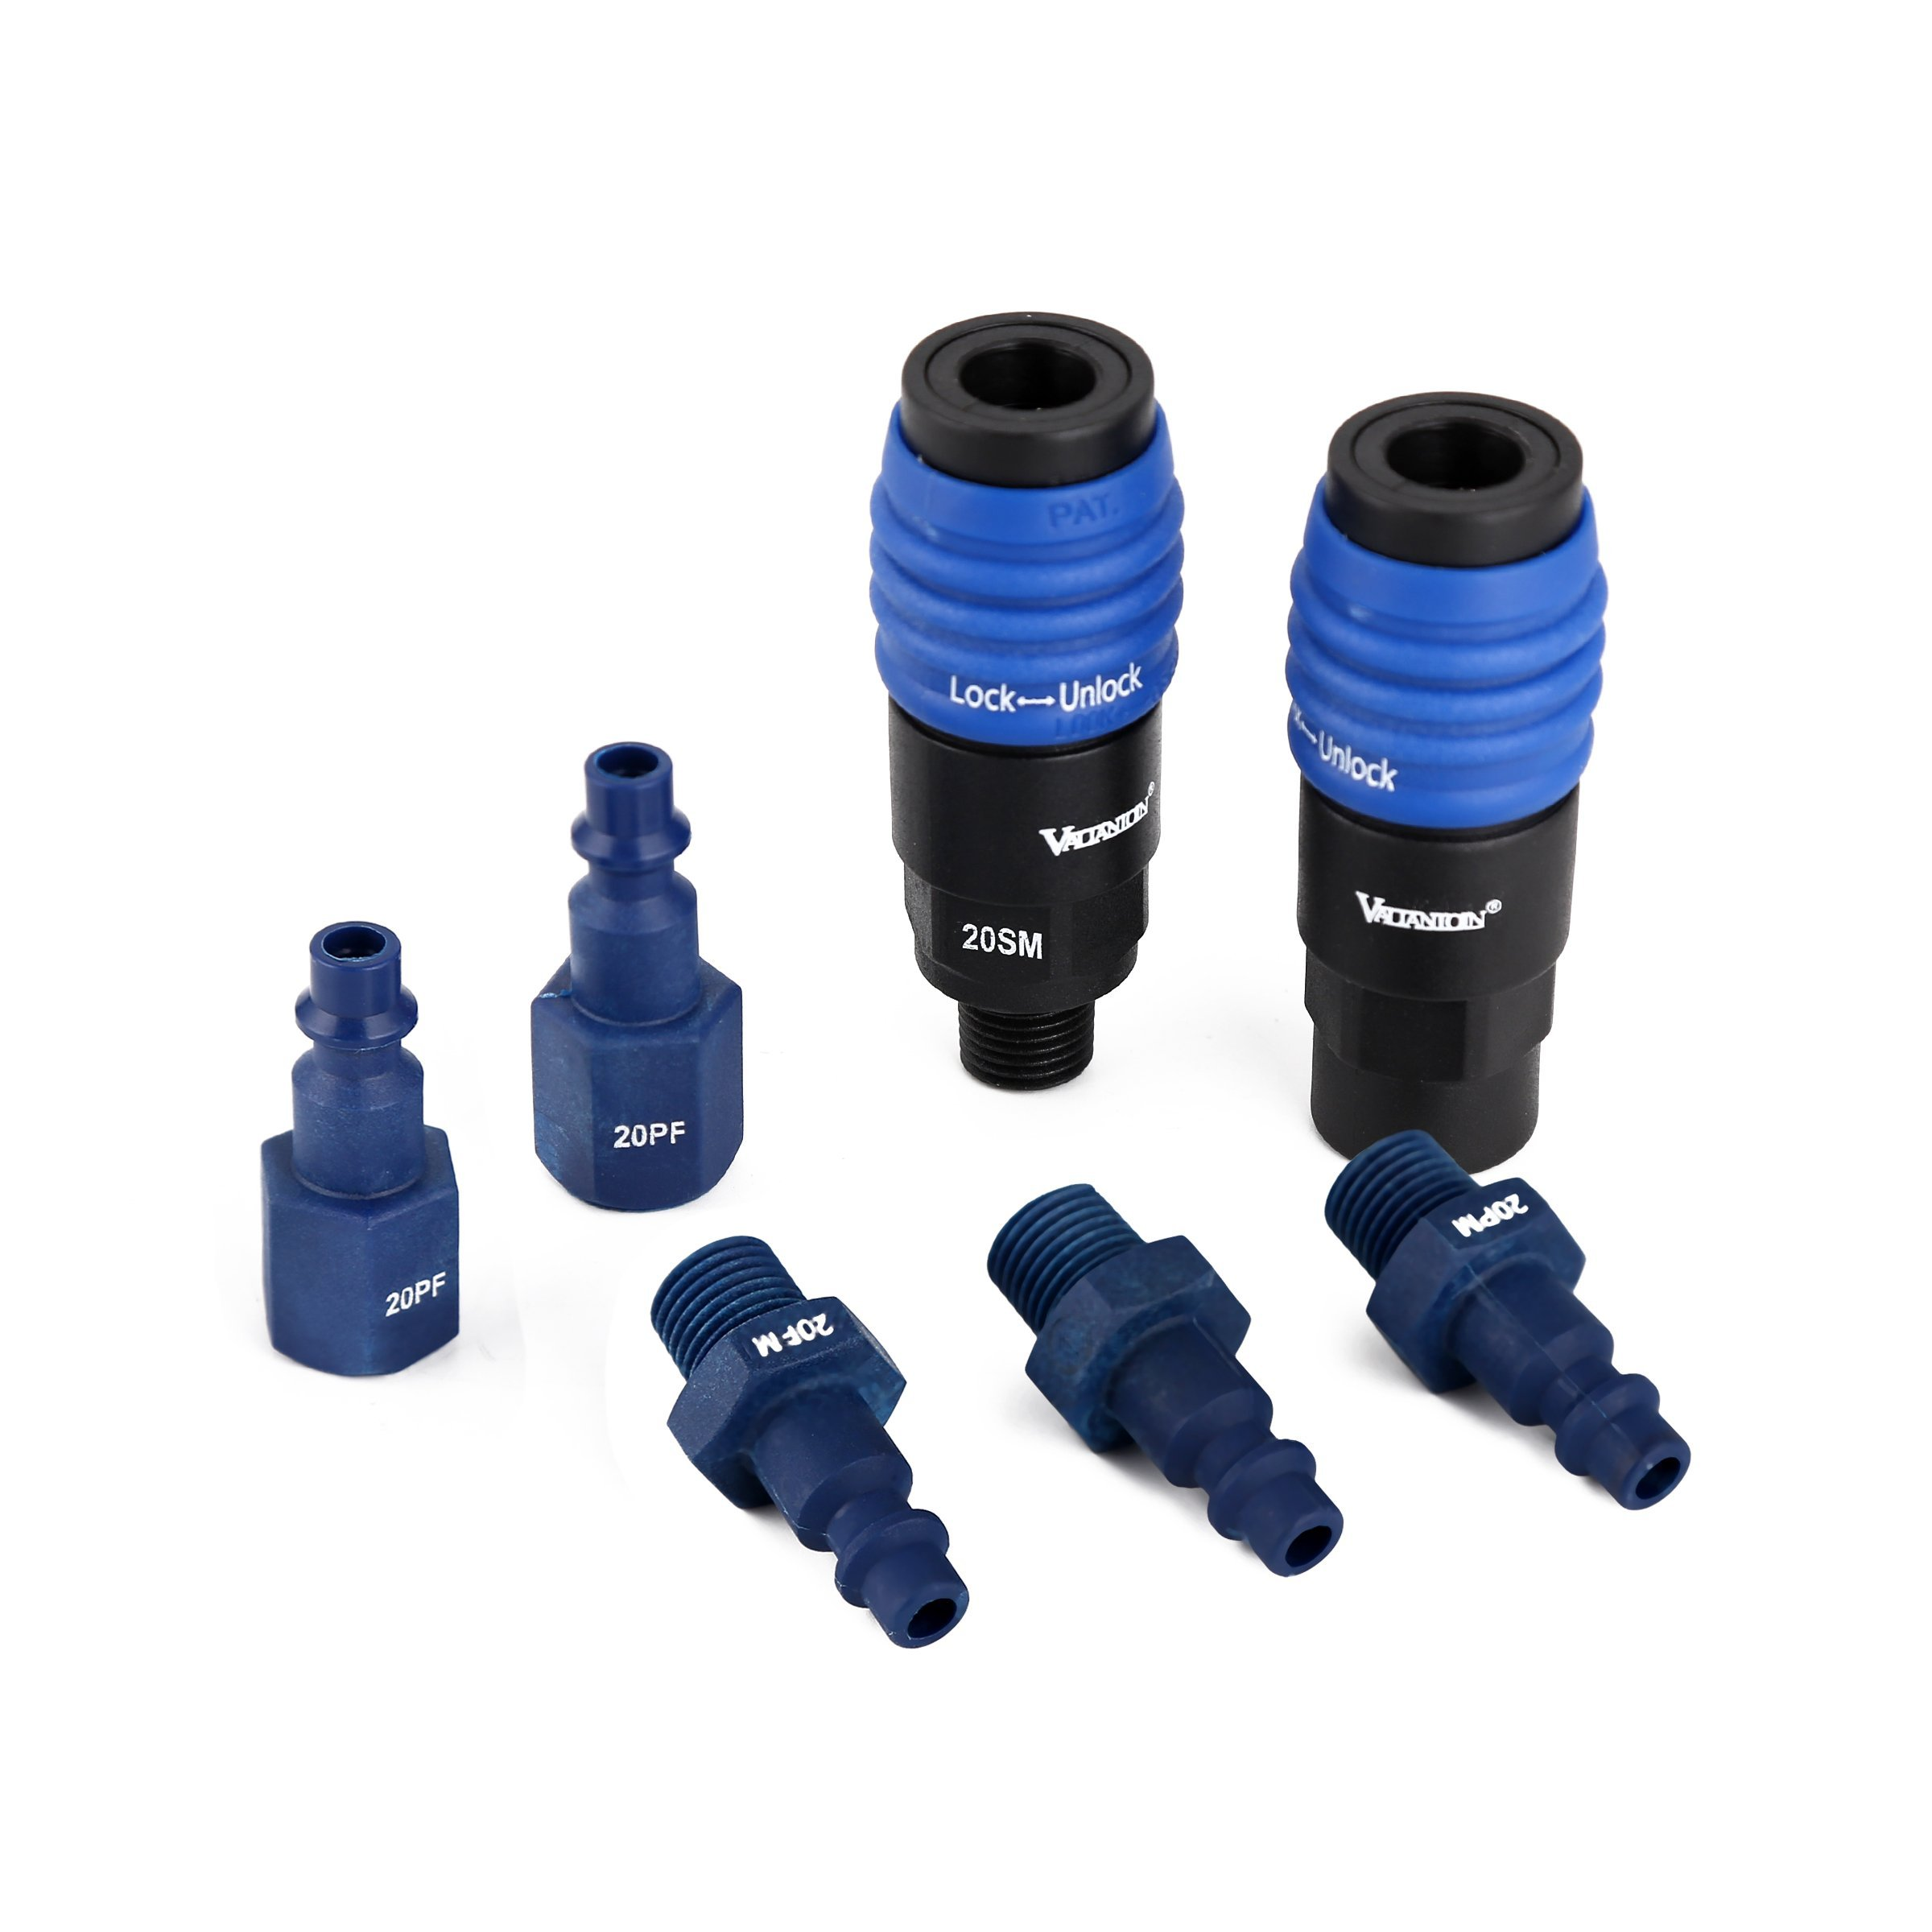 Valianto PVC-Steel 1/4''NPT Coupler & 1/4''NPT Plug Kit (7 Piece) - Aro/Miltion/Ture-flate 3-in-1 Air Coupler with Rotary Safety Lock, Quick Connect Air Fittings Quick Connect Set, Blue